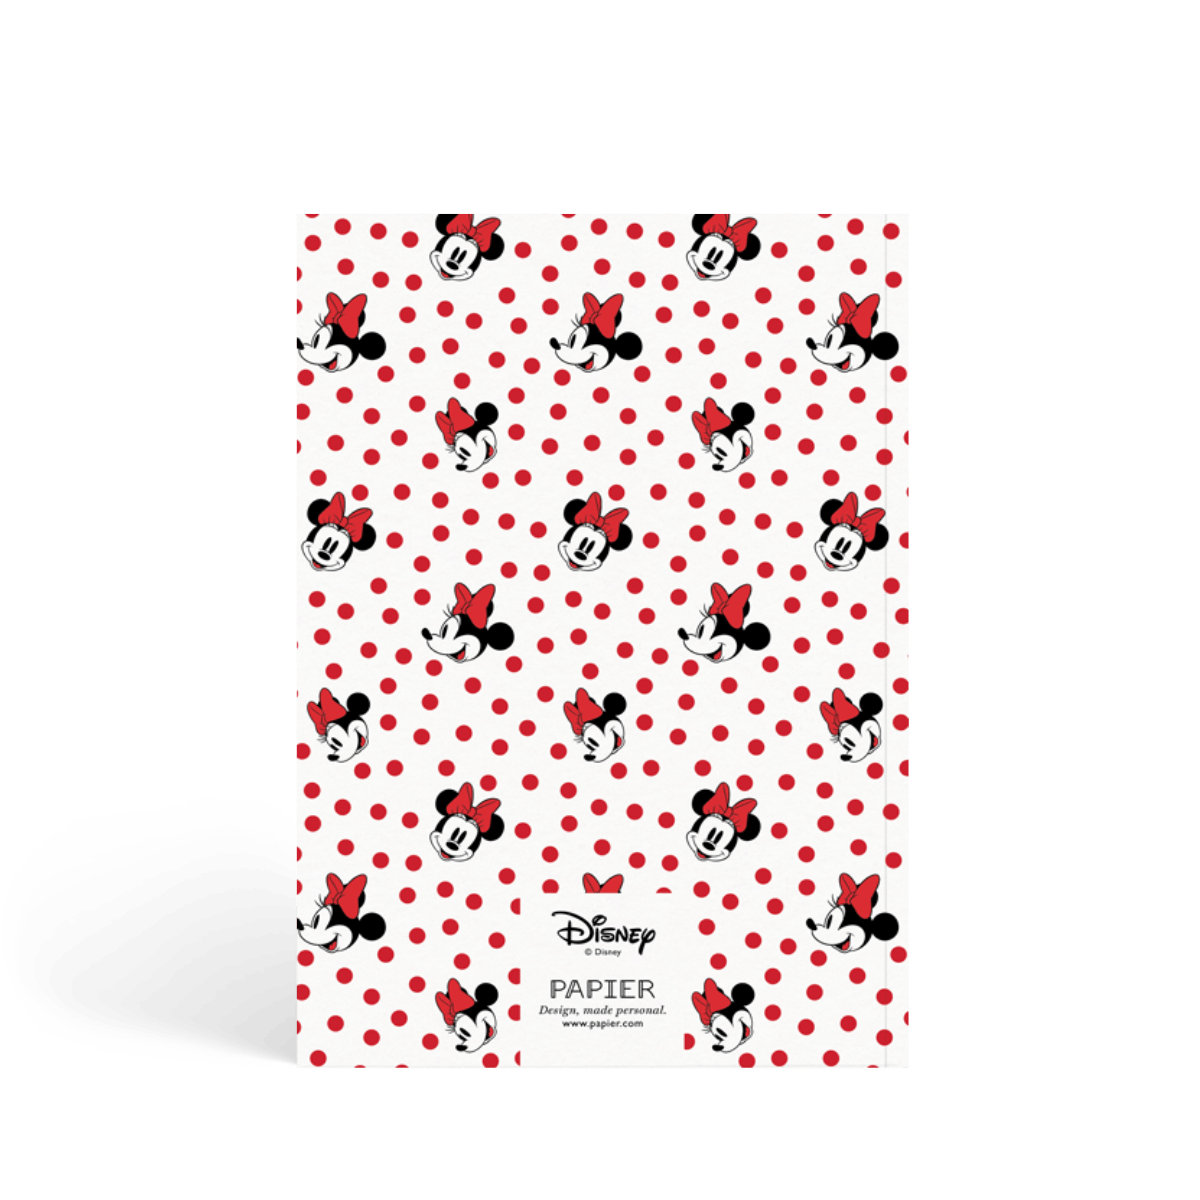 Https%3a%2f%2fwww.papier.com%2fproduct image%2f56028%2f5%2fminnie mouse 13461 back 1542369387.png?ixlib=rb 1.1